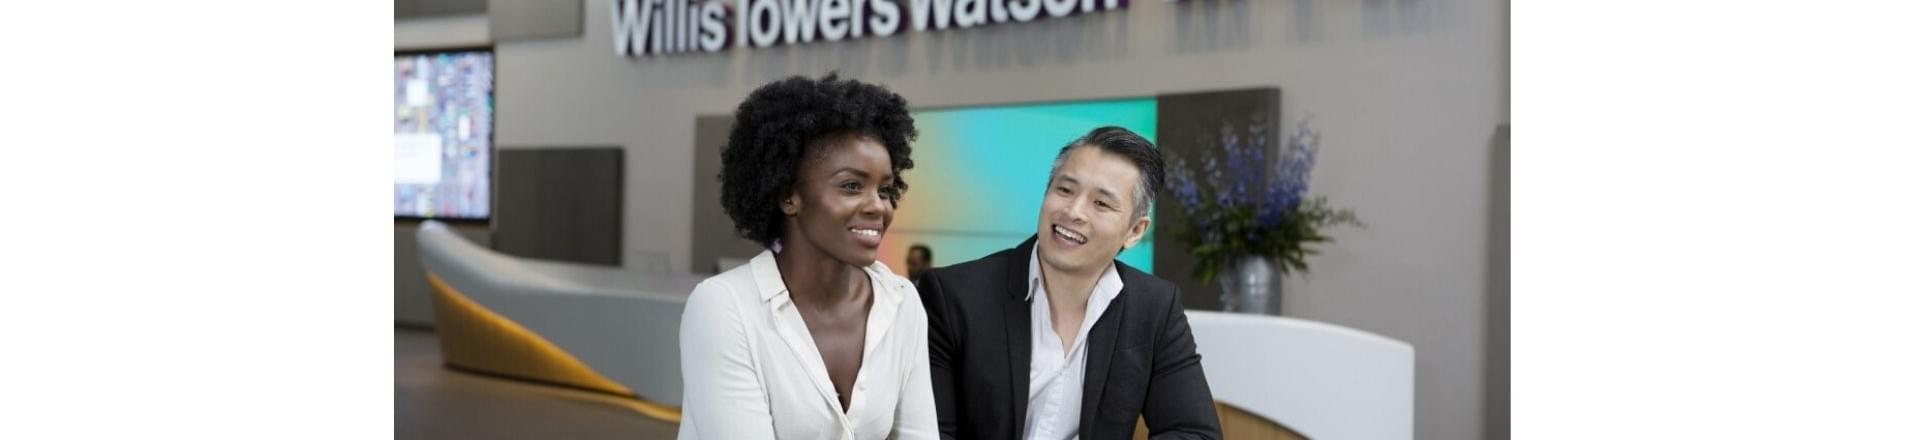 Two people, a african woman and east asian male standing together